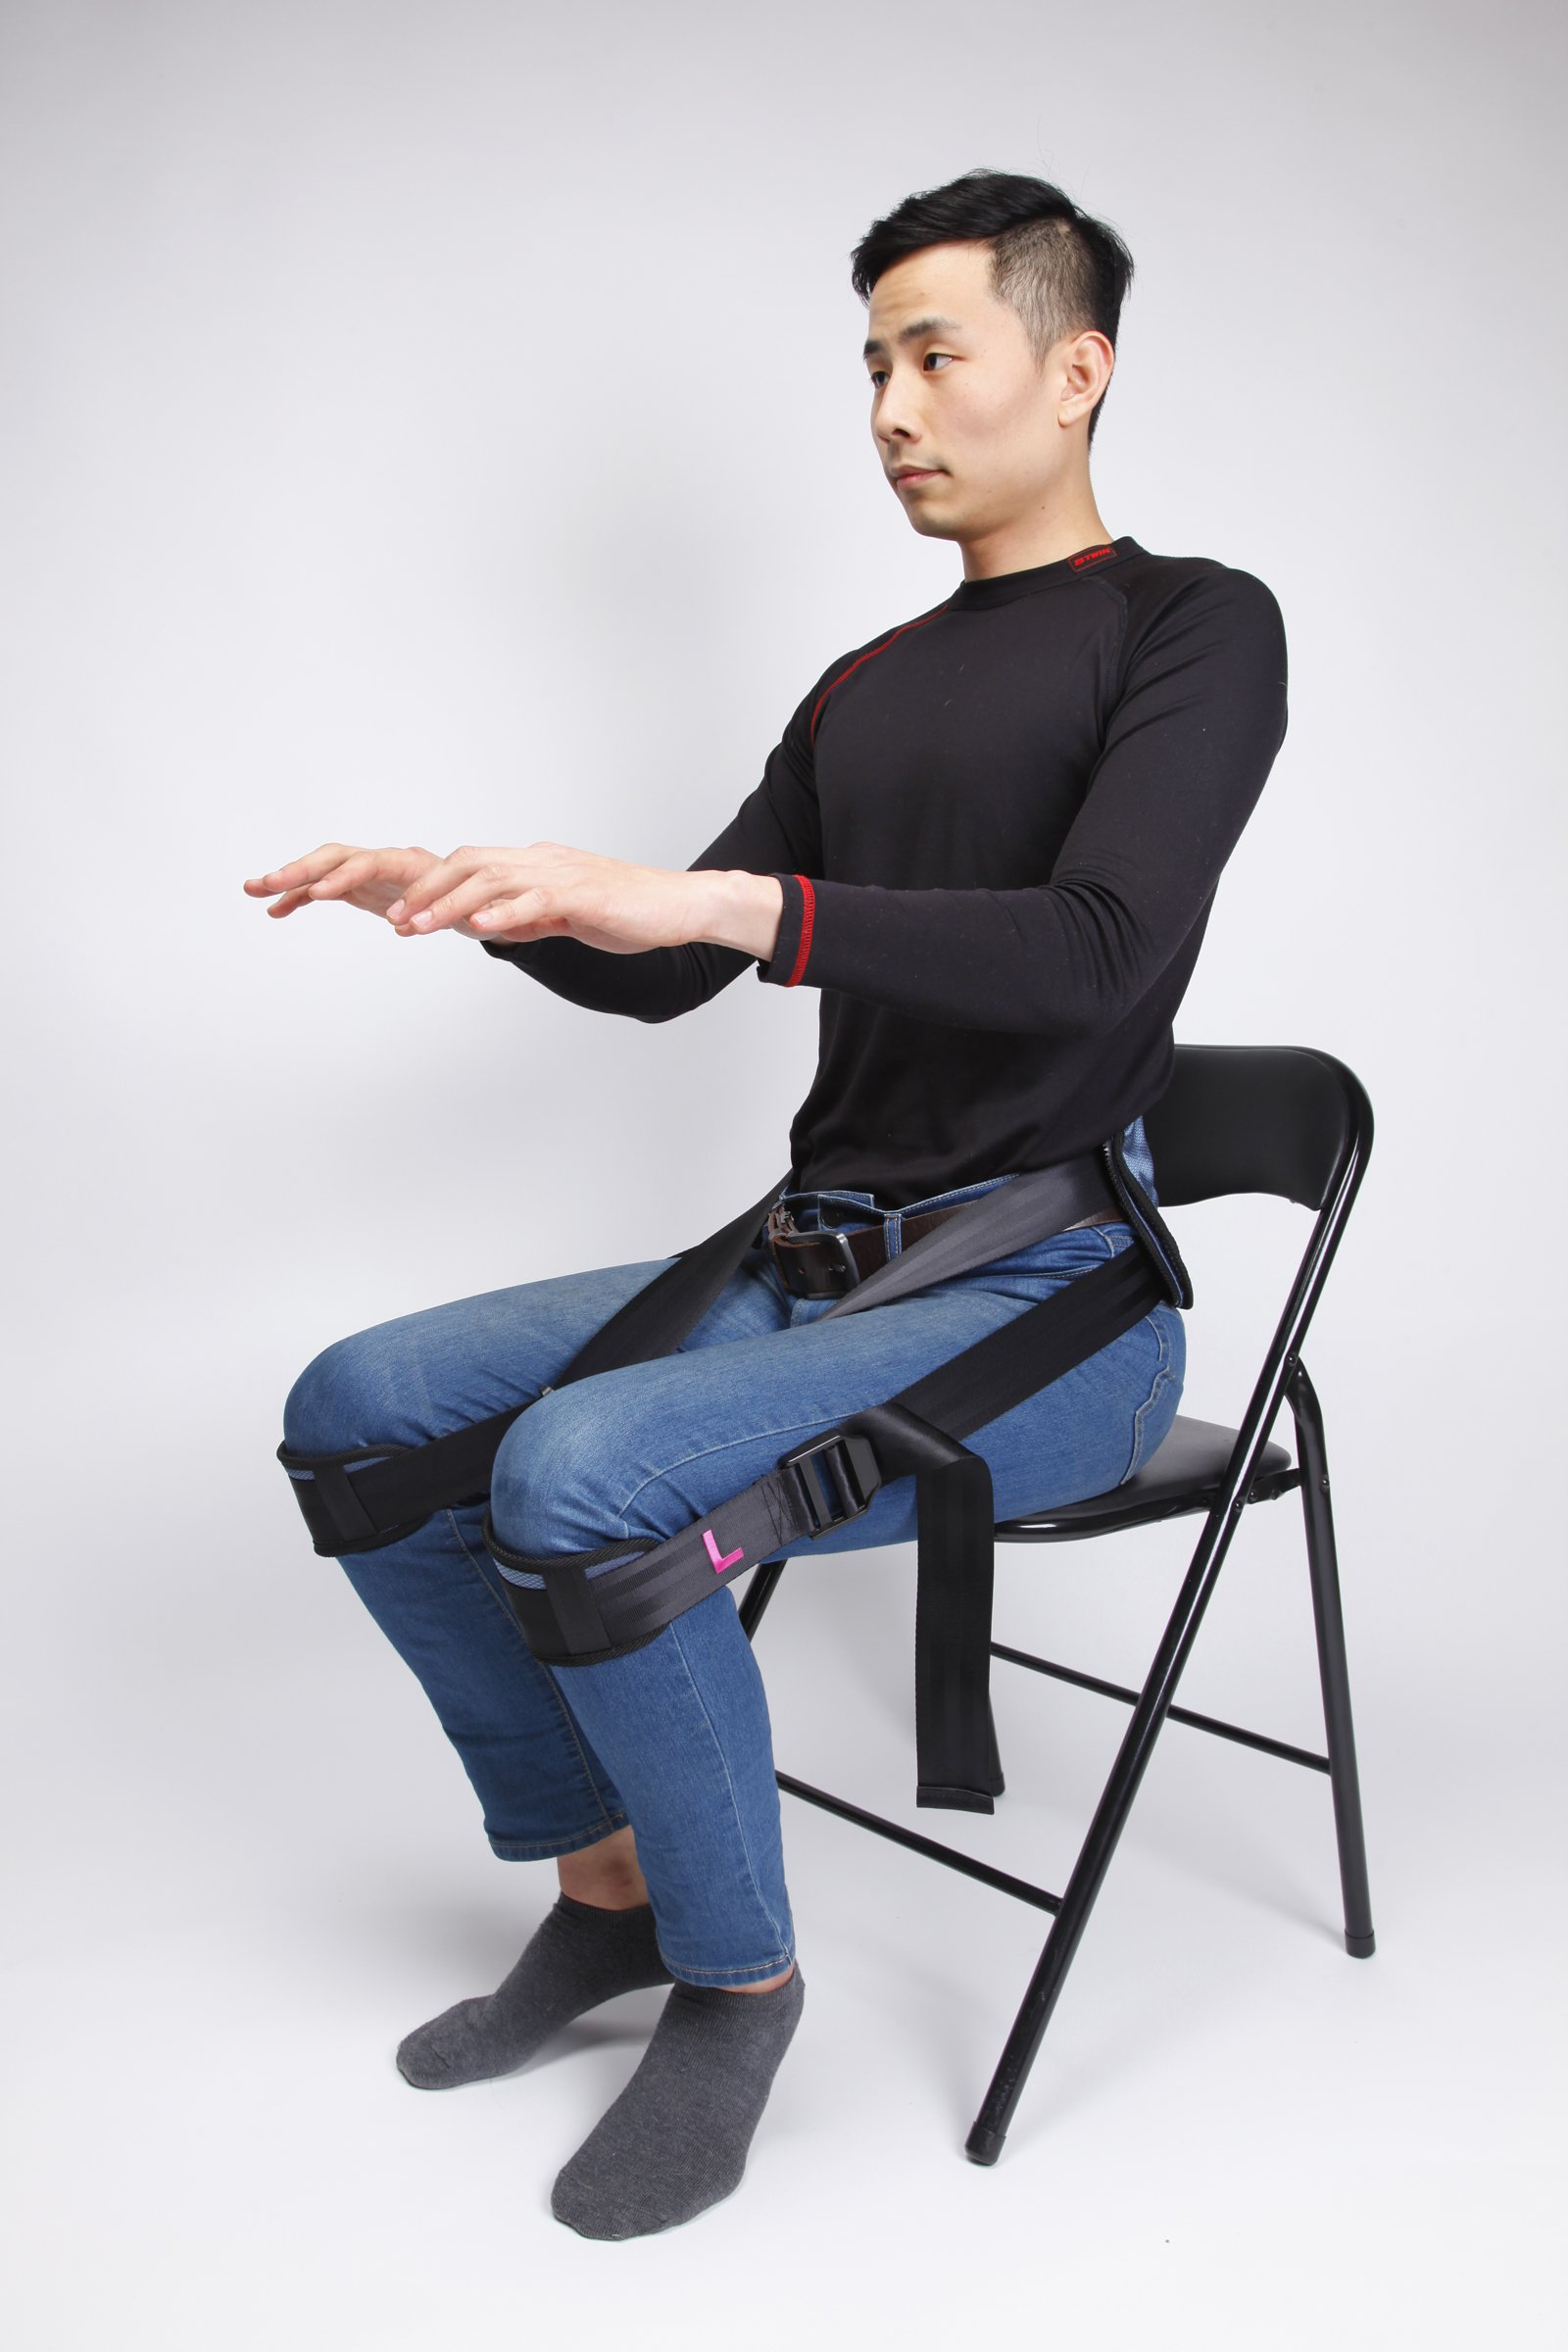 Everyway4all EverTrac Taiwan LT100 Lumbar back support adjustable personal belt by Everyway4all (Image #8)